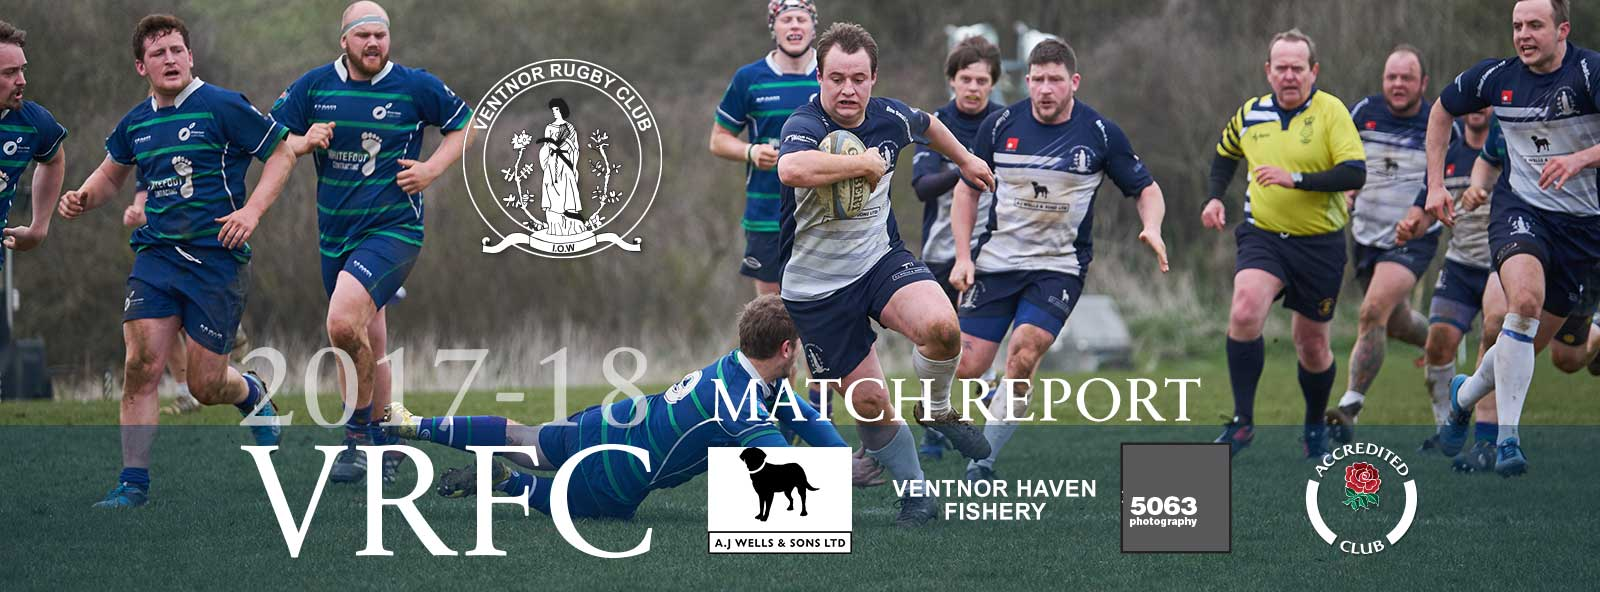 Ventnor-RFC-1XV-v-Overton-RFC-1XV-07042018-match-report-1600-wide-x-315